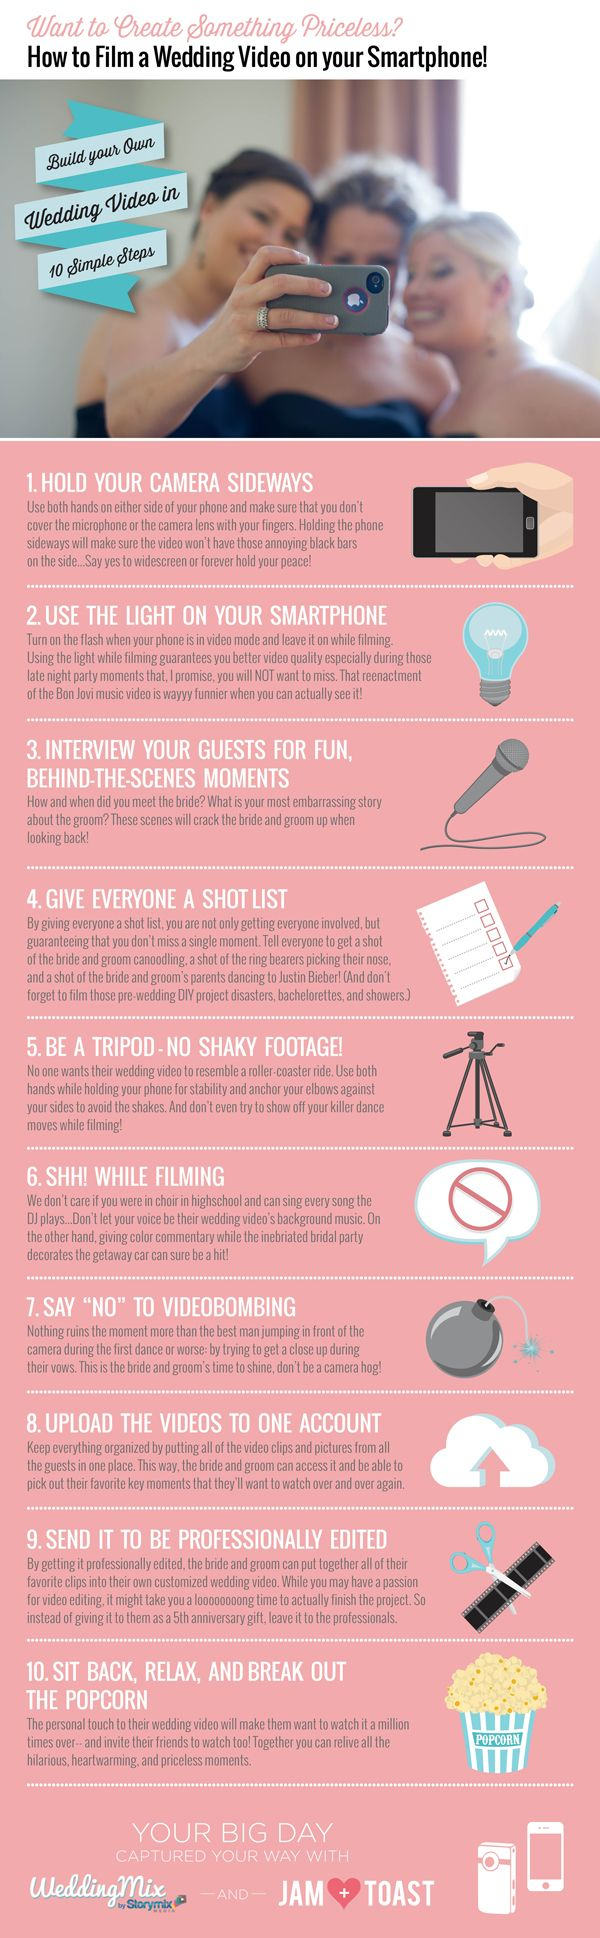 98% of brides regret not getting a wedding video. With these tips, you can get a wedding video w/o breaking the bank.  read more